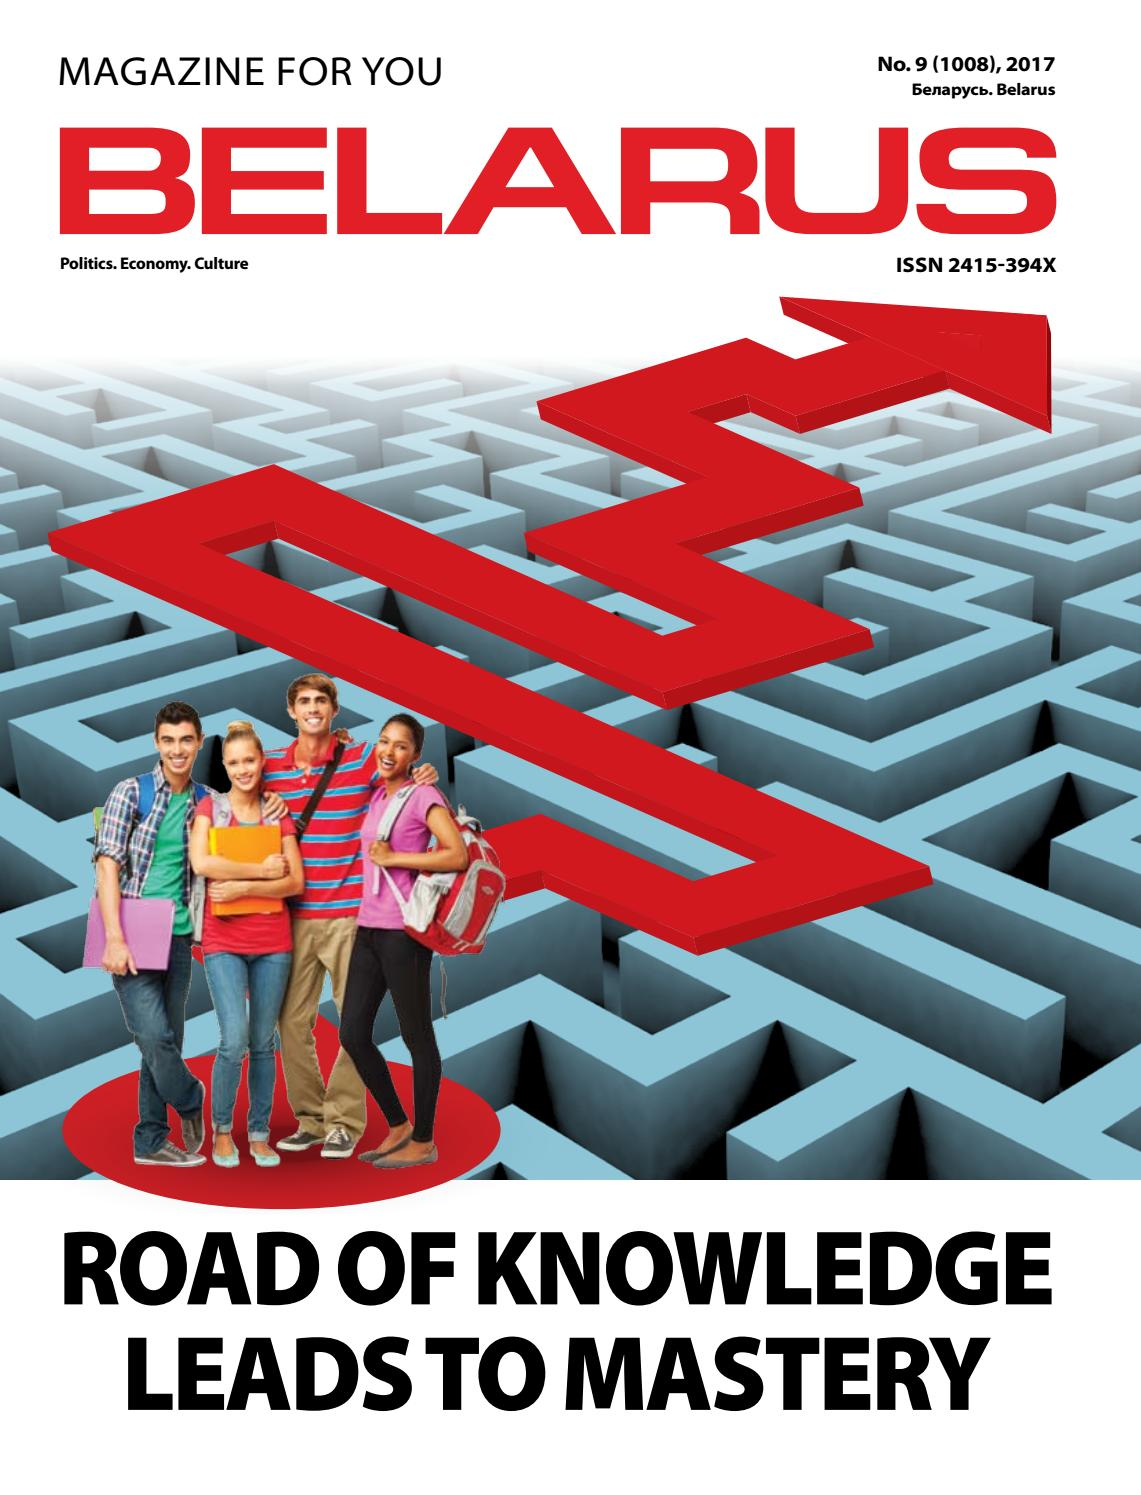 Belarusian Agricultural Academy: history, faculties and specialties, passing grade